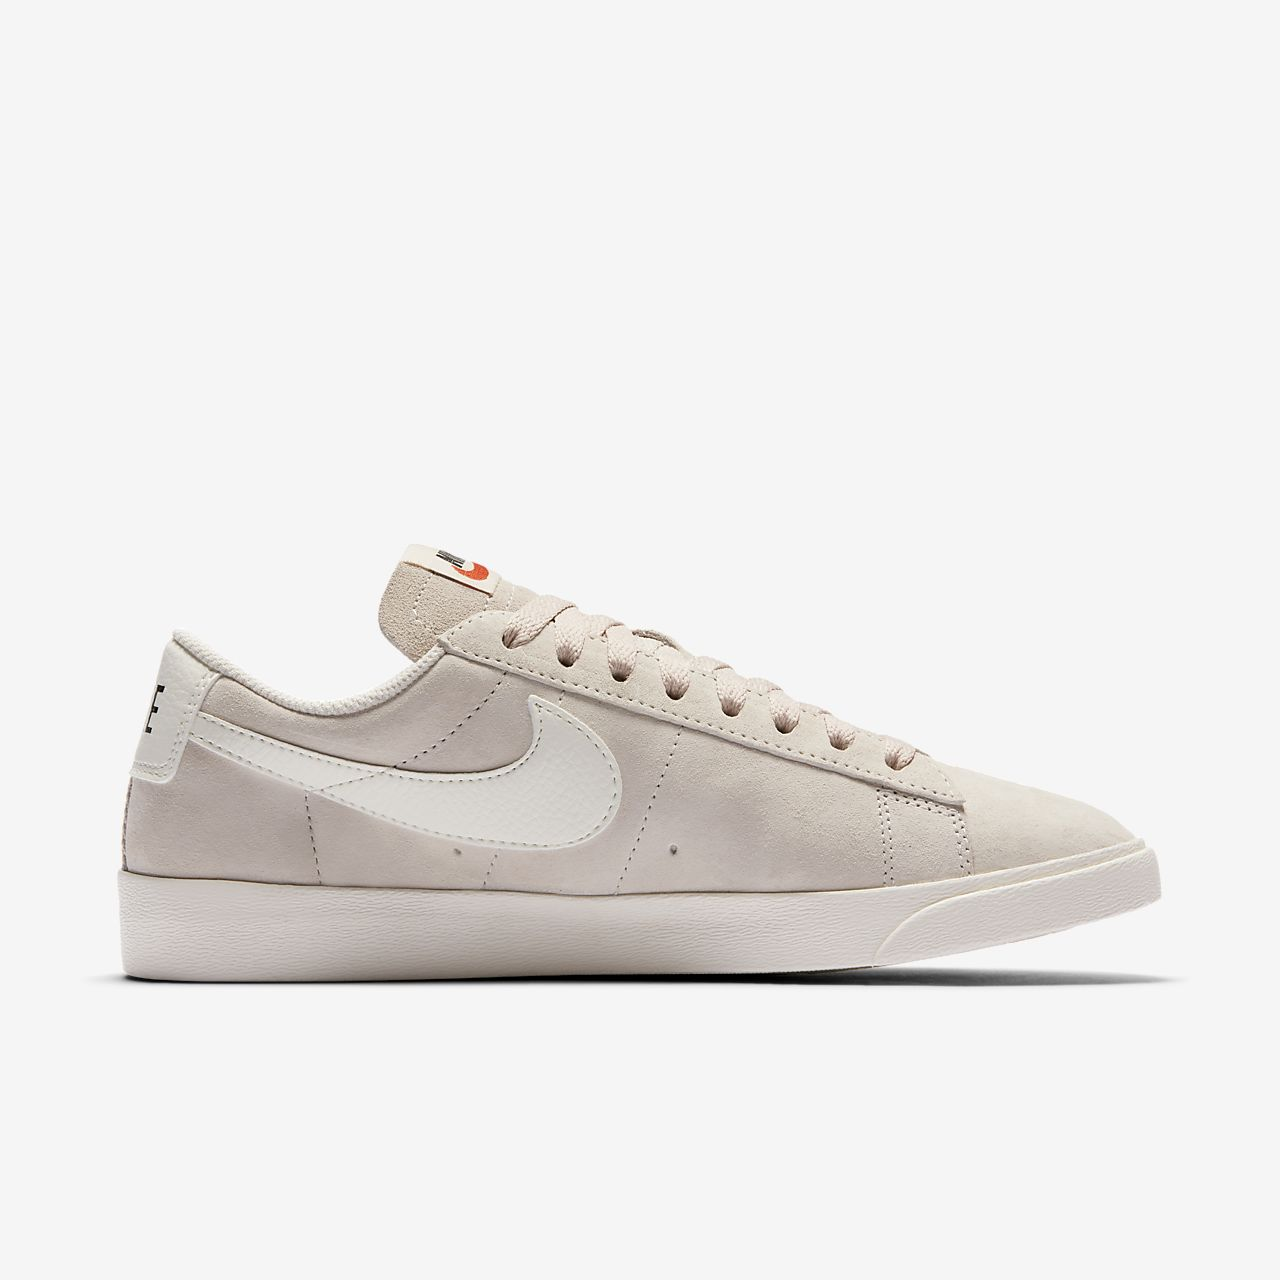 the latest 7fc41 1973b ... where can i buy nike blazer low premium w scarpa bianco precio de  fábrica envío bajo